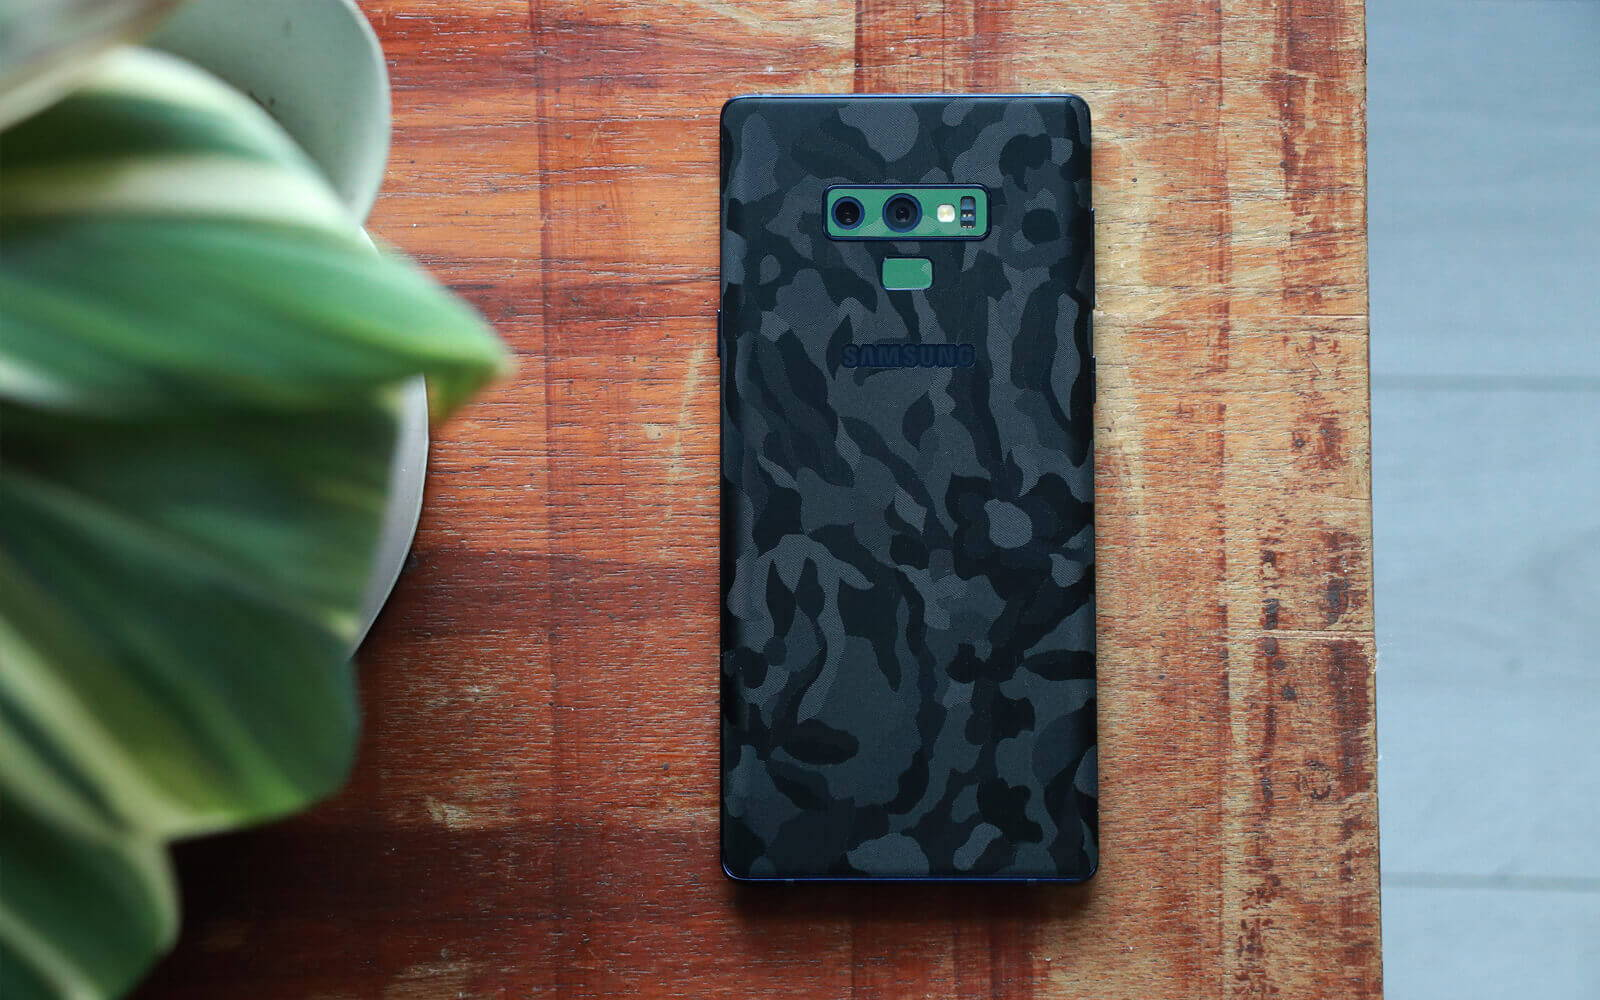 Samsung Galaxy Note 9 Black Camo and Green Camo Skins